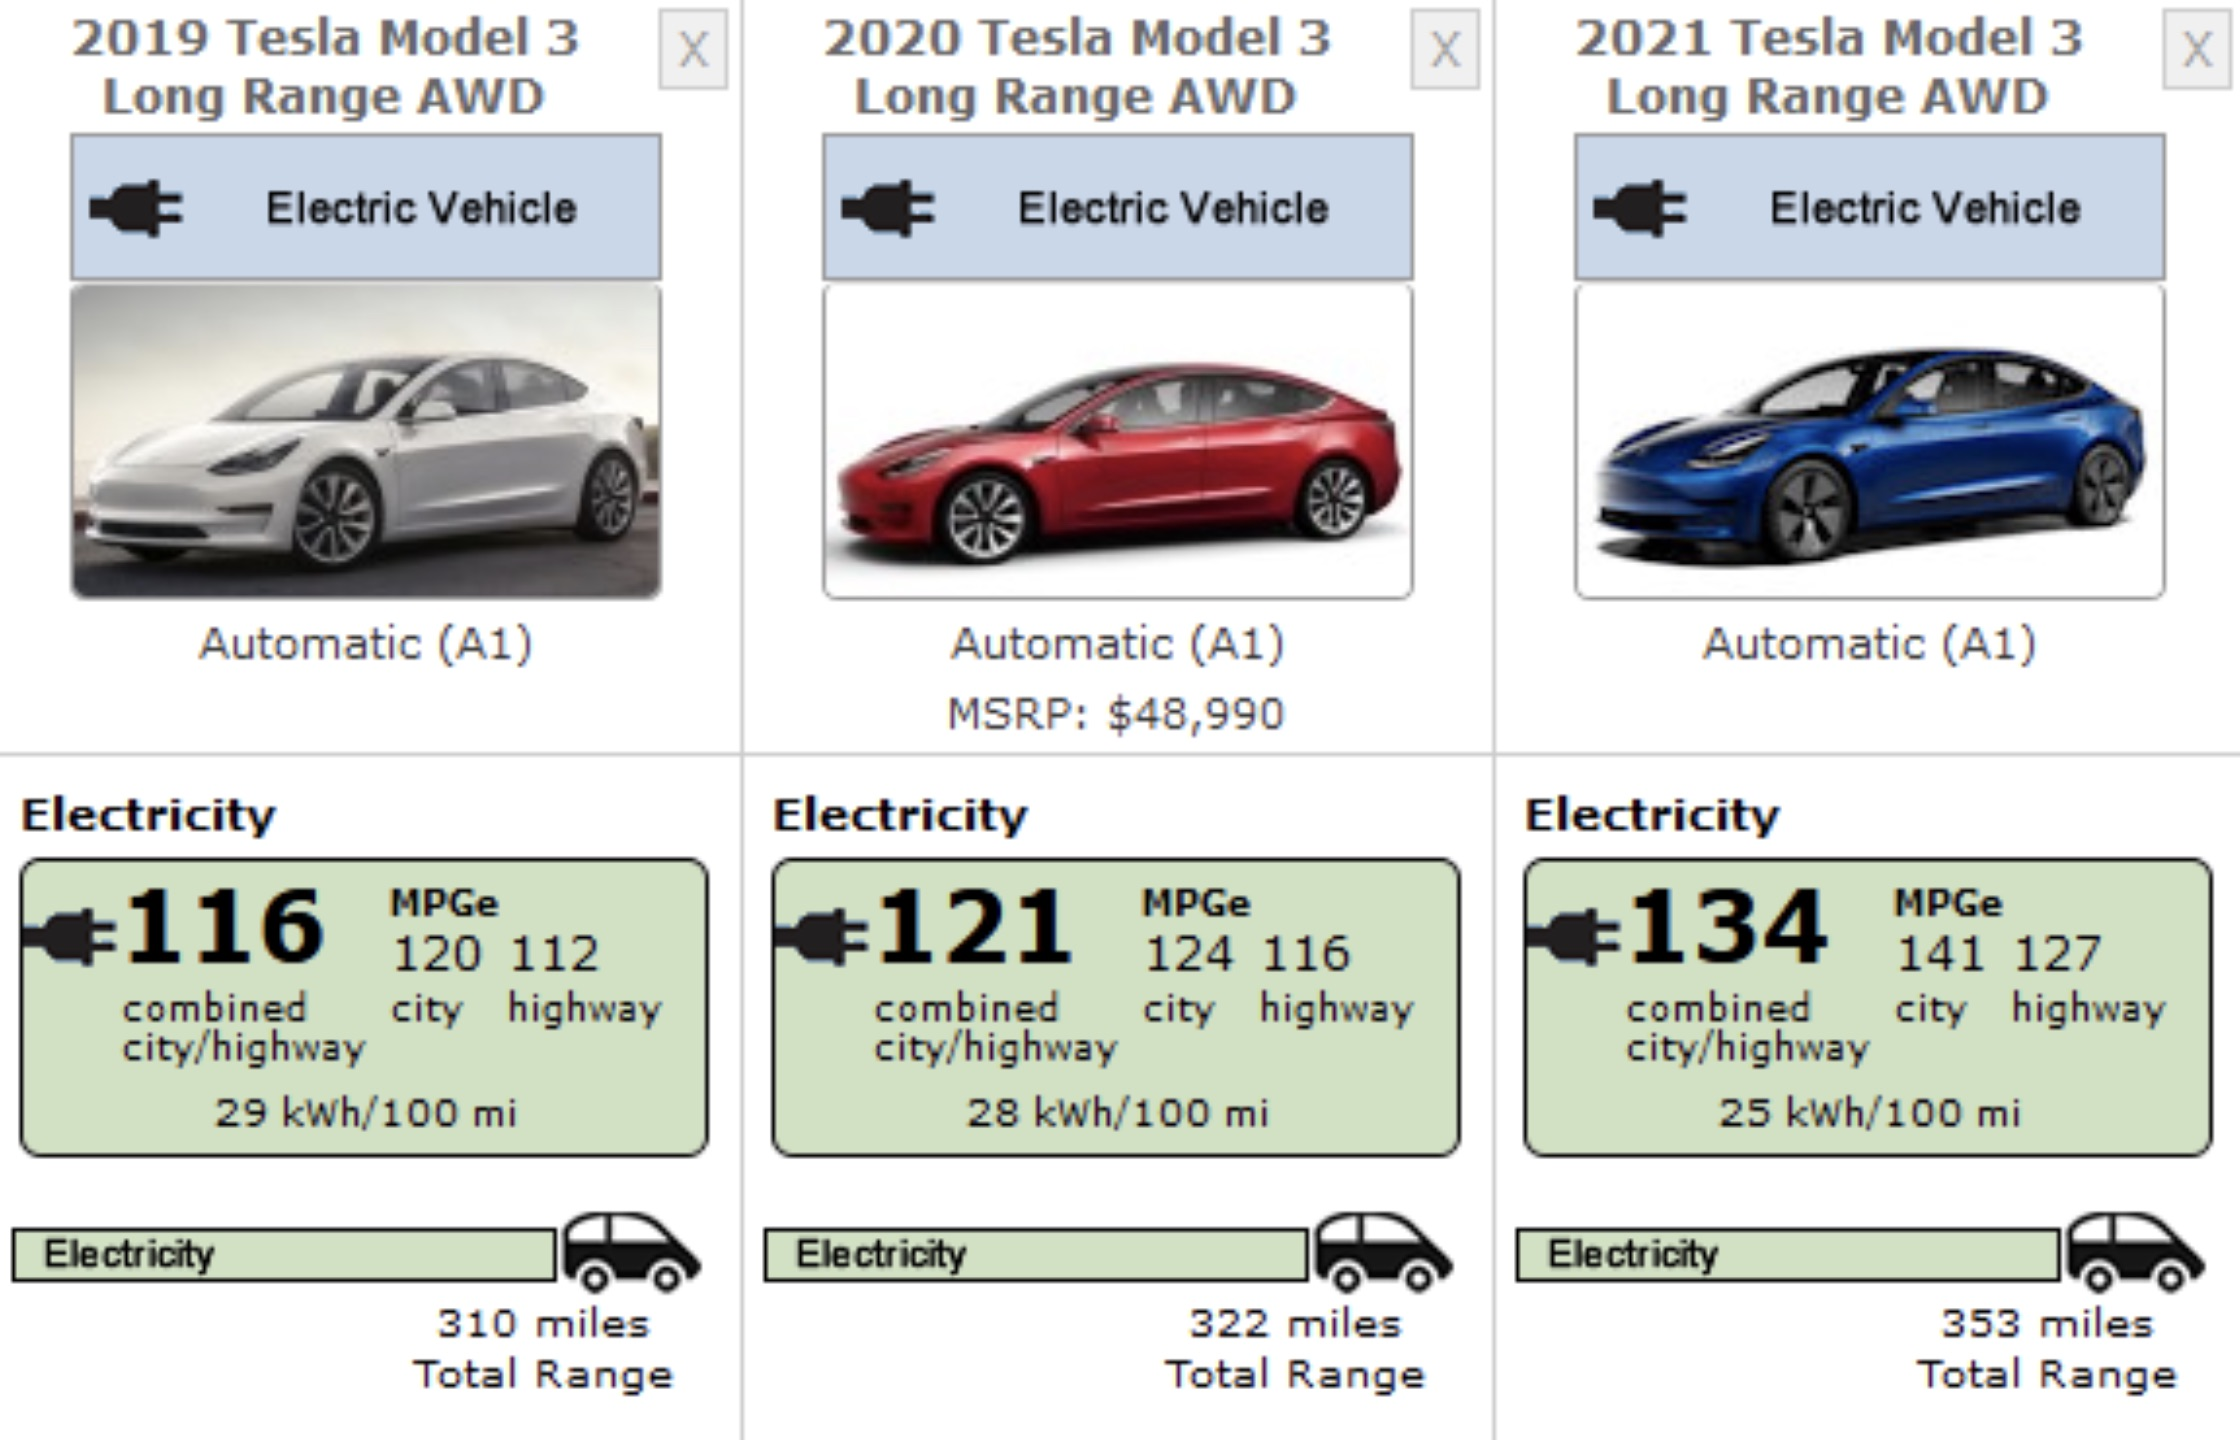 Tesla-Model-3-refresh-Long-Range-AWD-efficiency